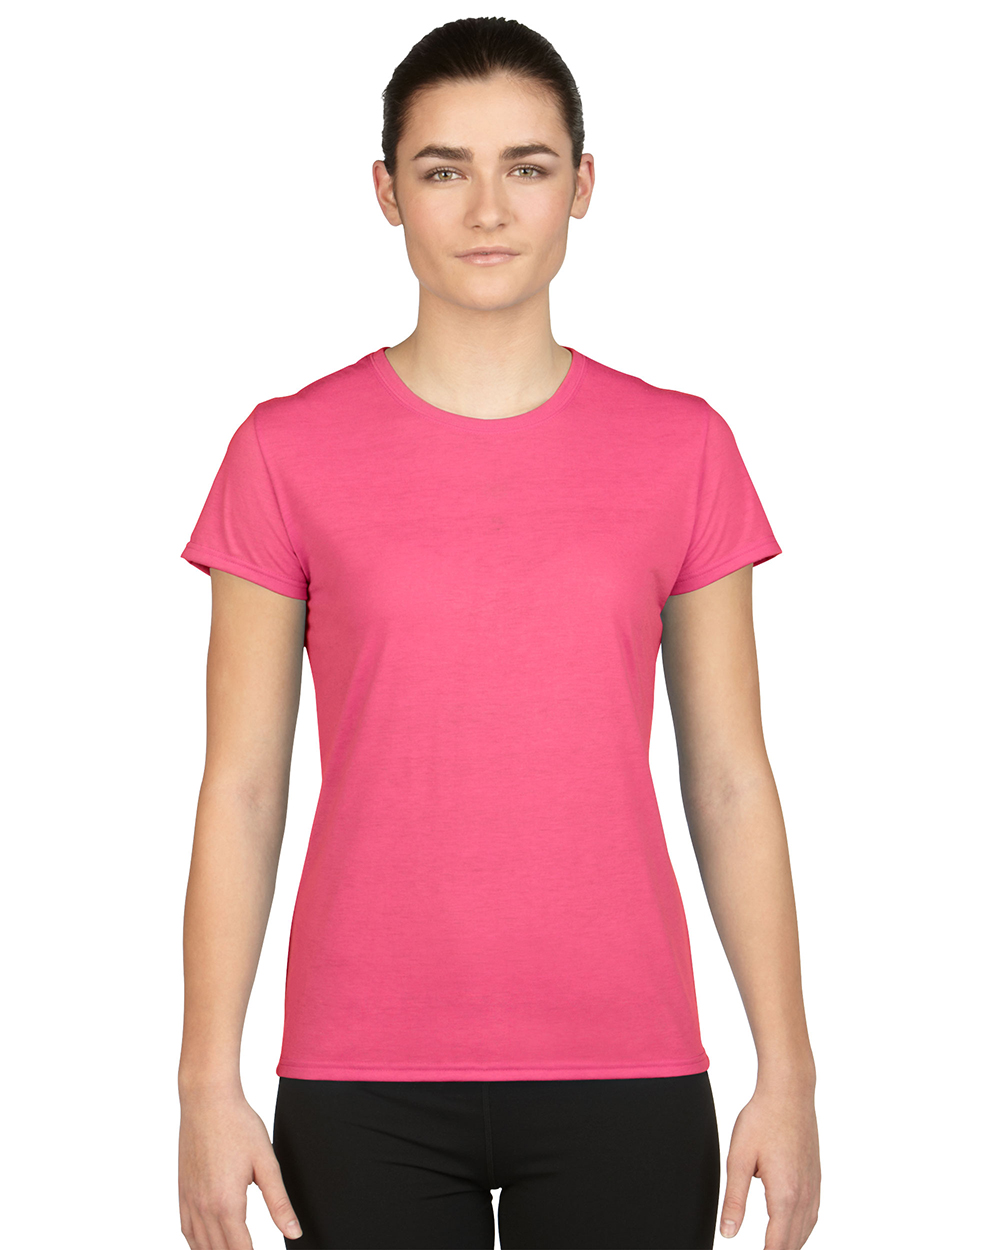 Gildan 42000L     Ladies Performance     4.5 oz. 100% Polyester (Cotton Feel)